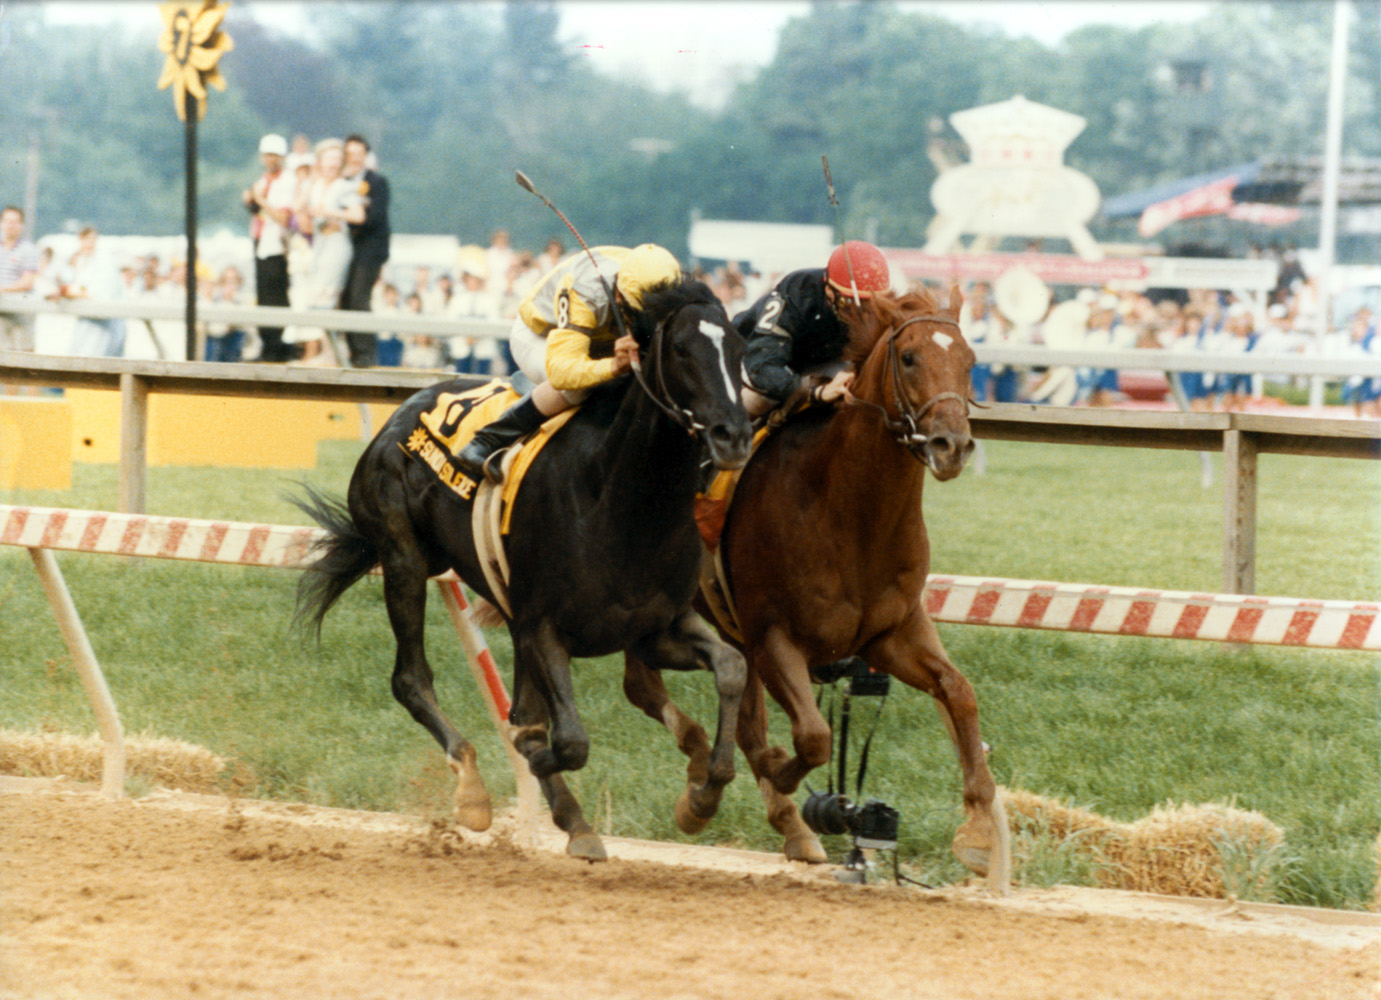 Easy Goer (Pat Day up) dueling Sunday Silence down the stretch in the 1989 Preakness Stakes at Pimlico (Skip Dickstein/Museum Collection)